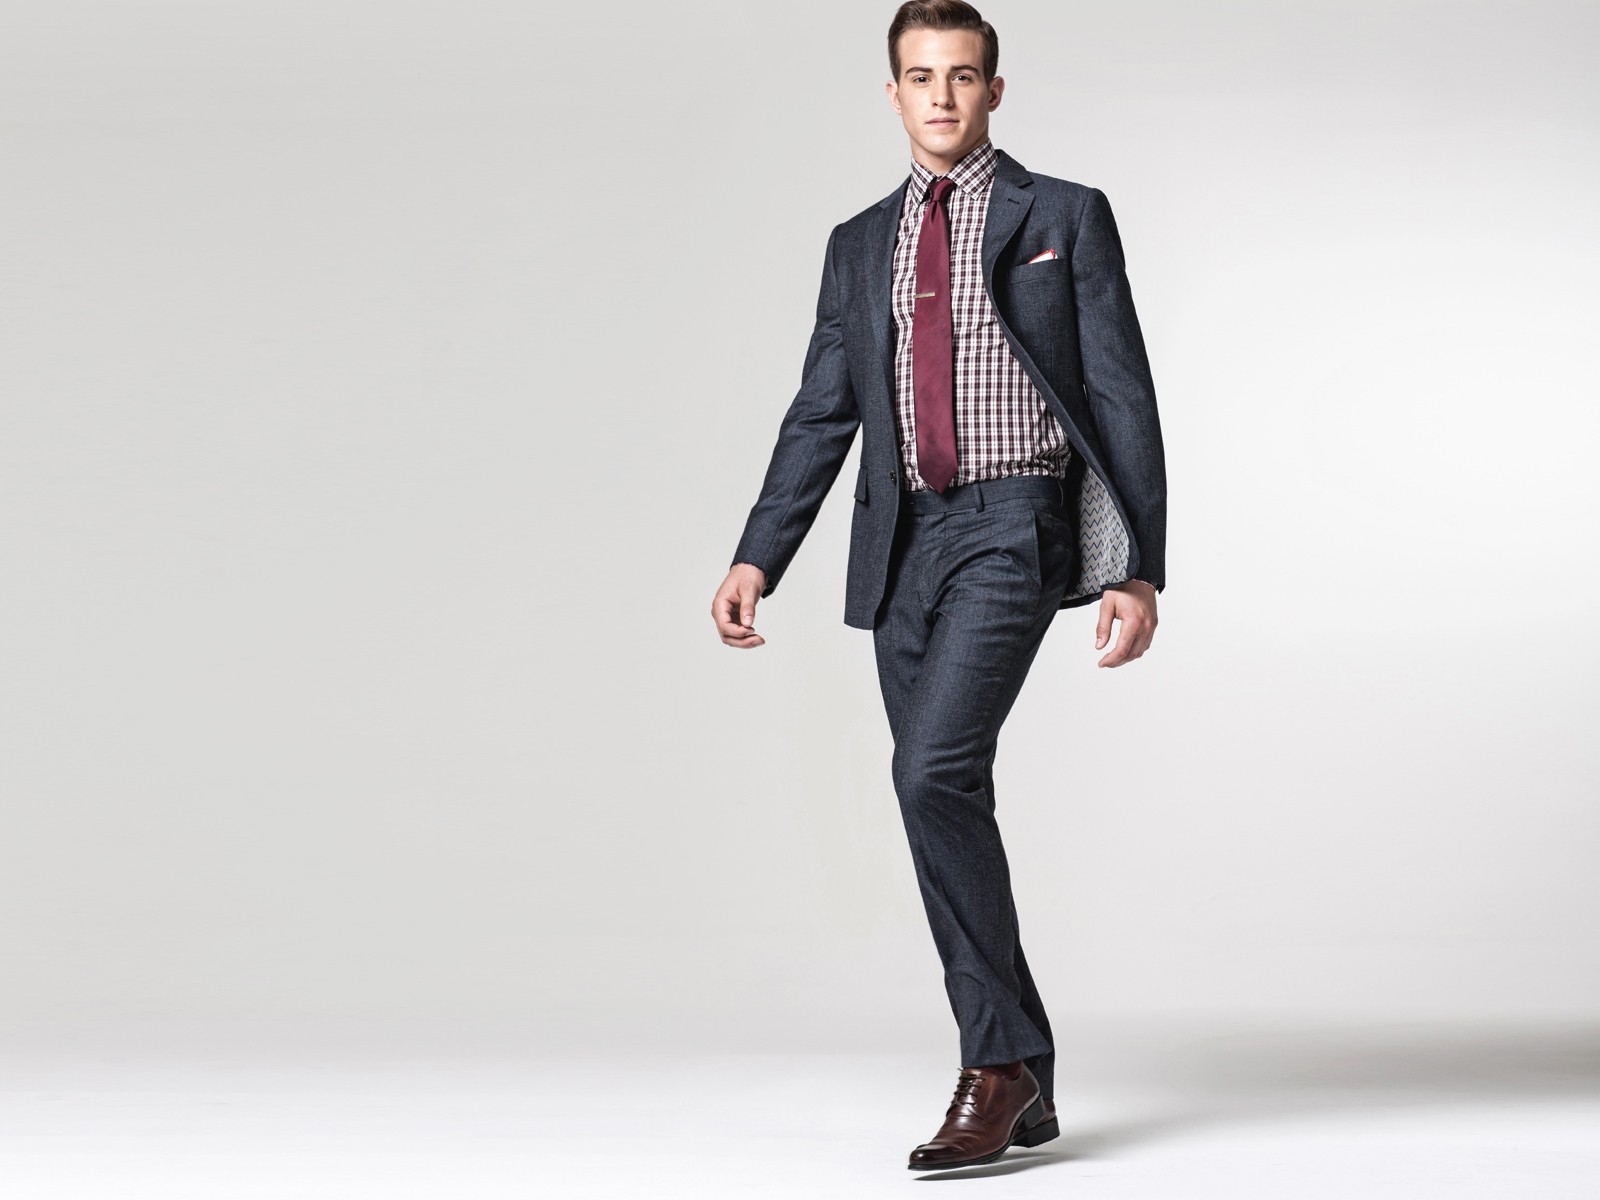 Introducing the Indochino Deco Collection and your chance to